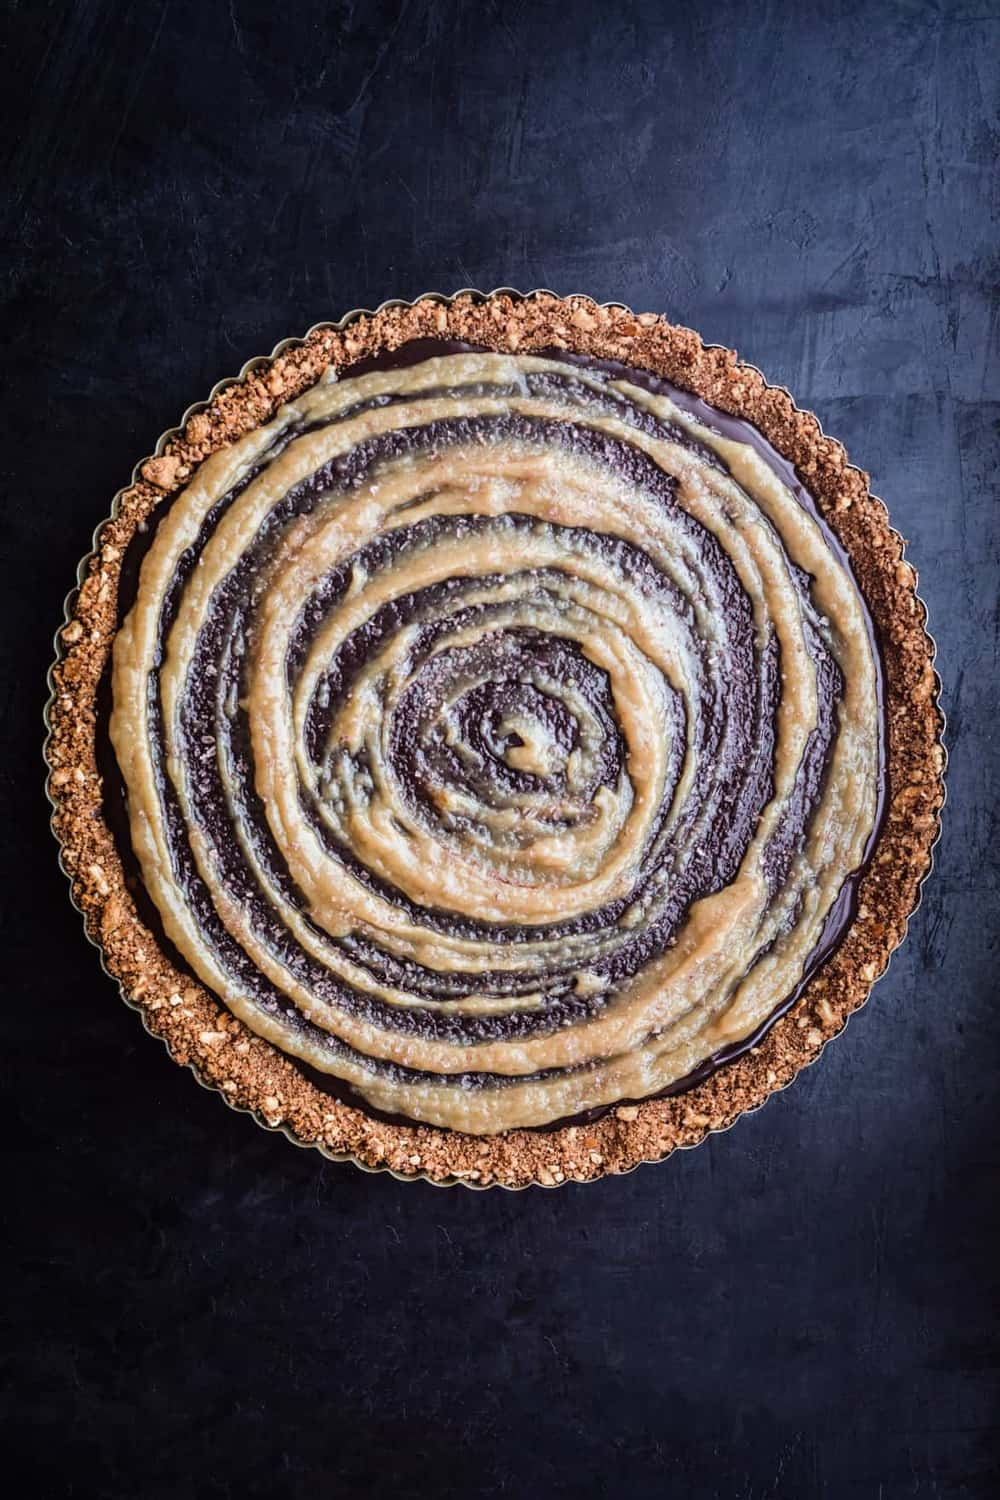 Finished tart with tahini swirl, overhead shot.